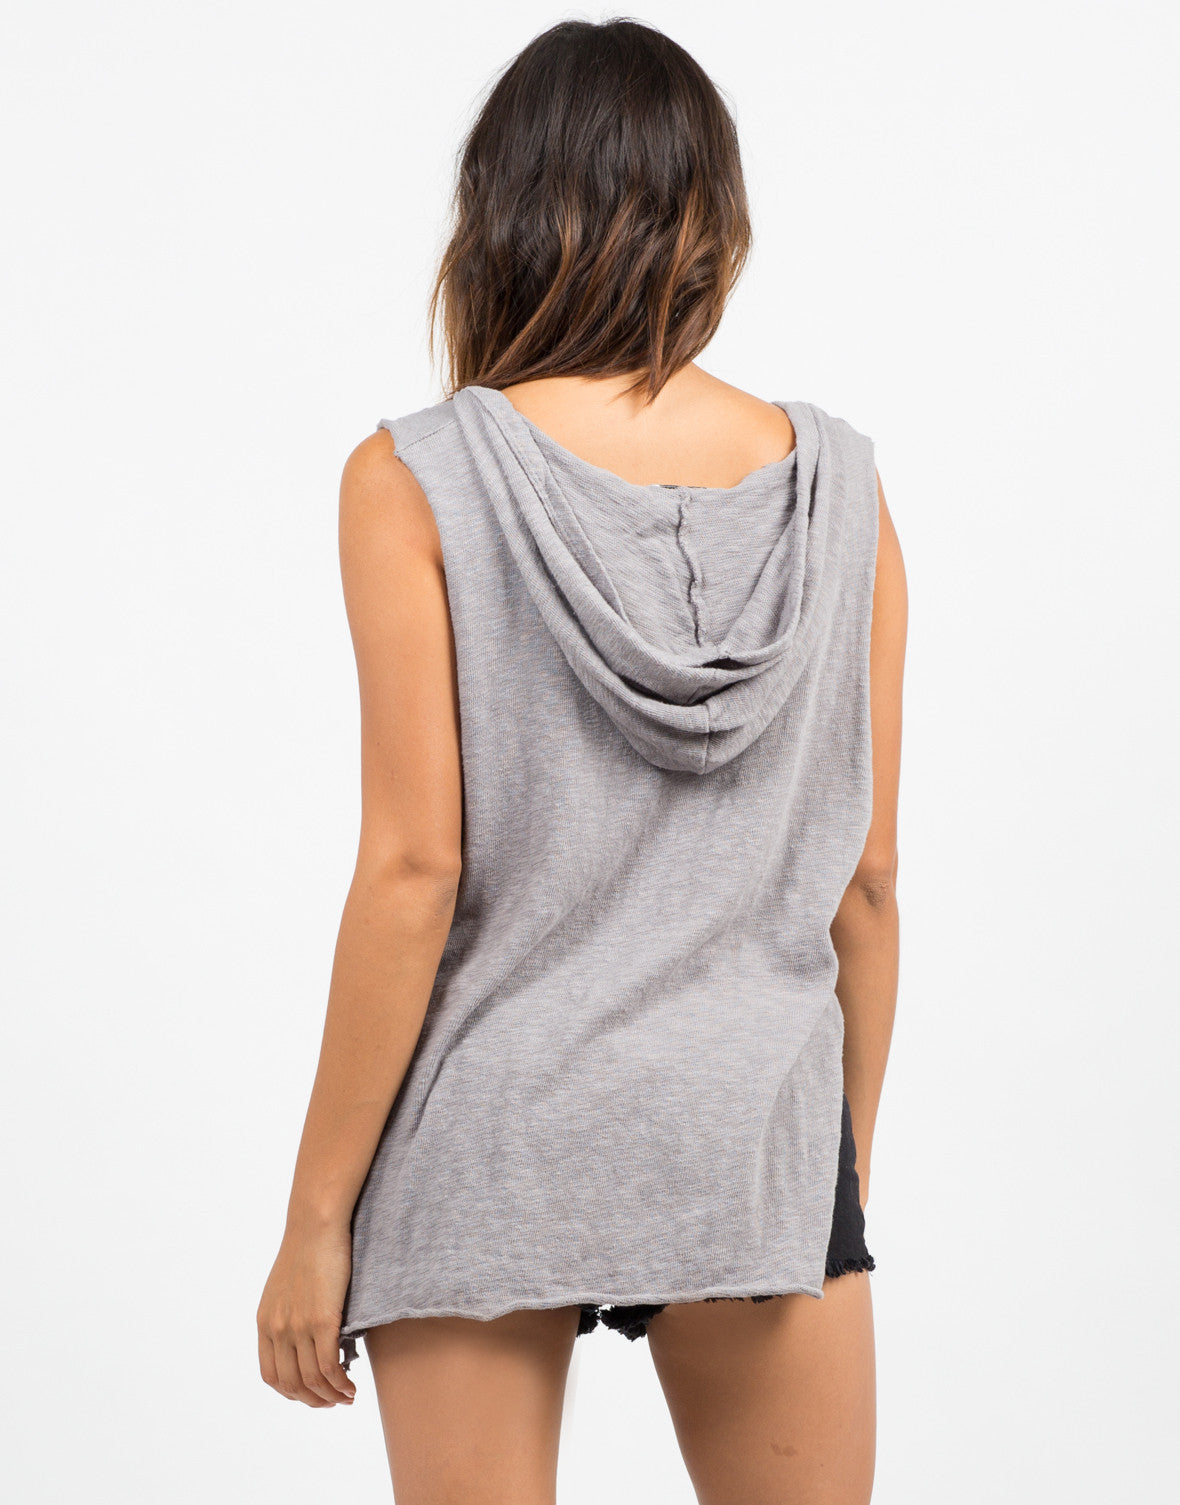 Back View of Hi-Low Hooded Tank